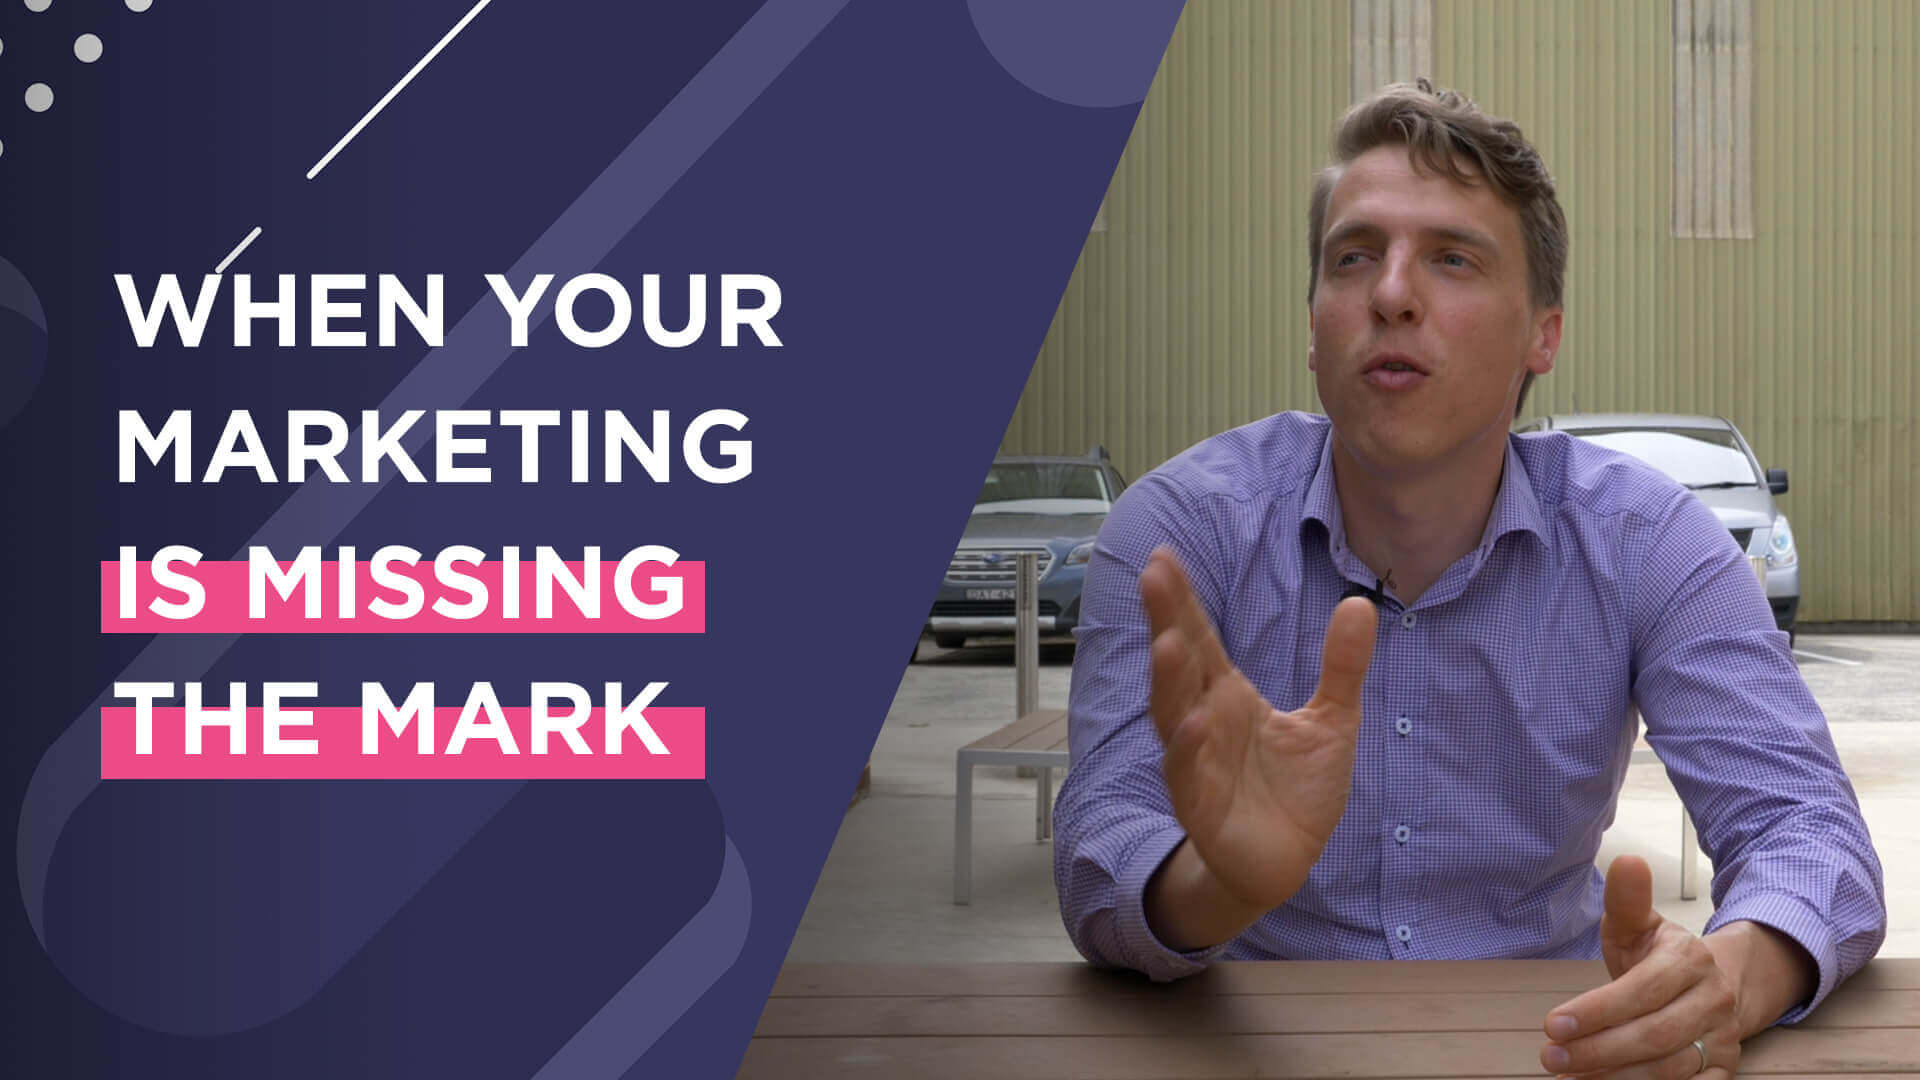 What to Do When Your Marketing Is Missing the Mark